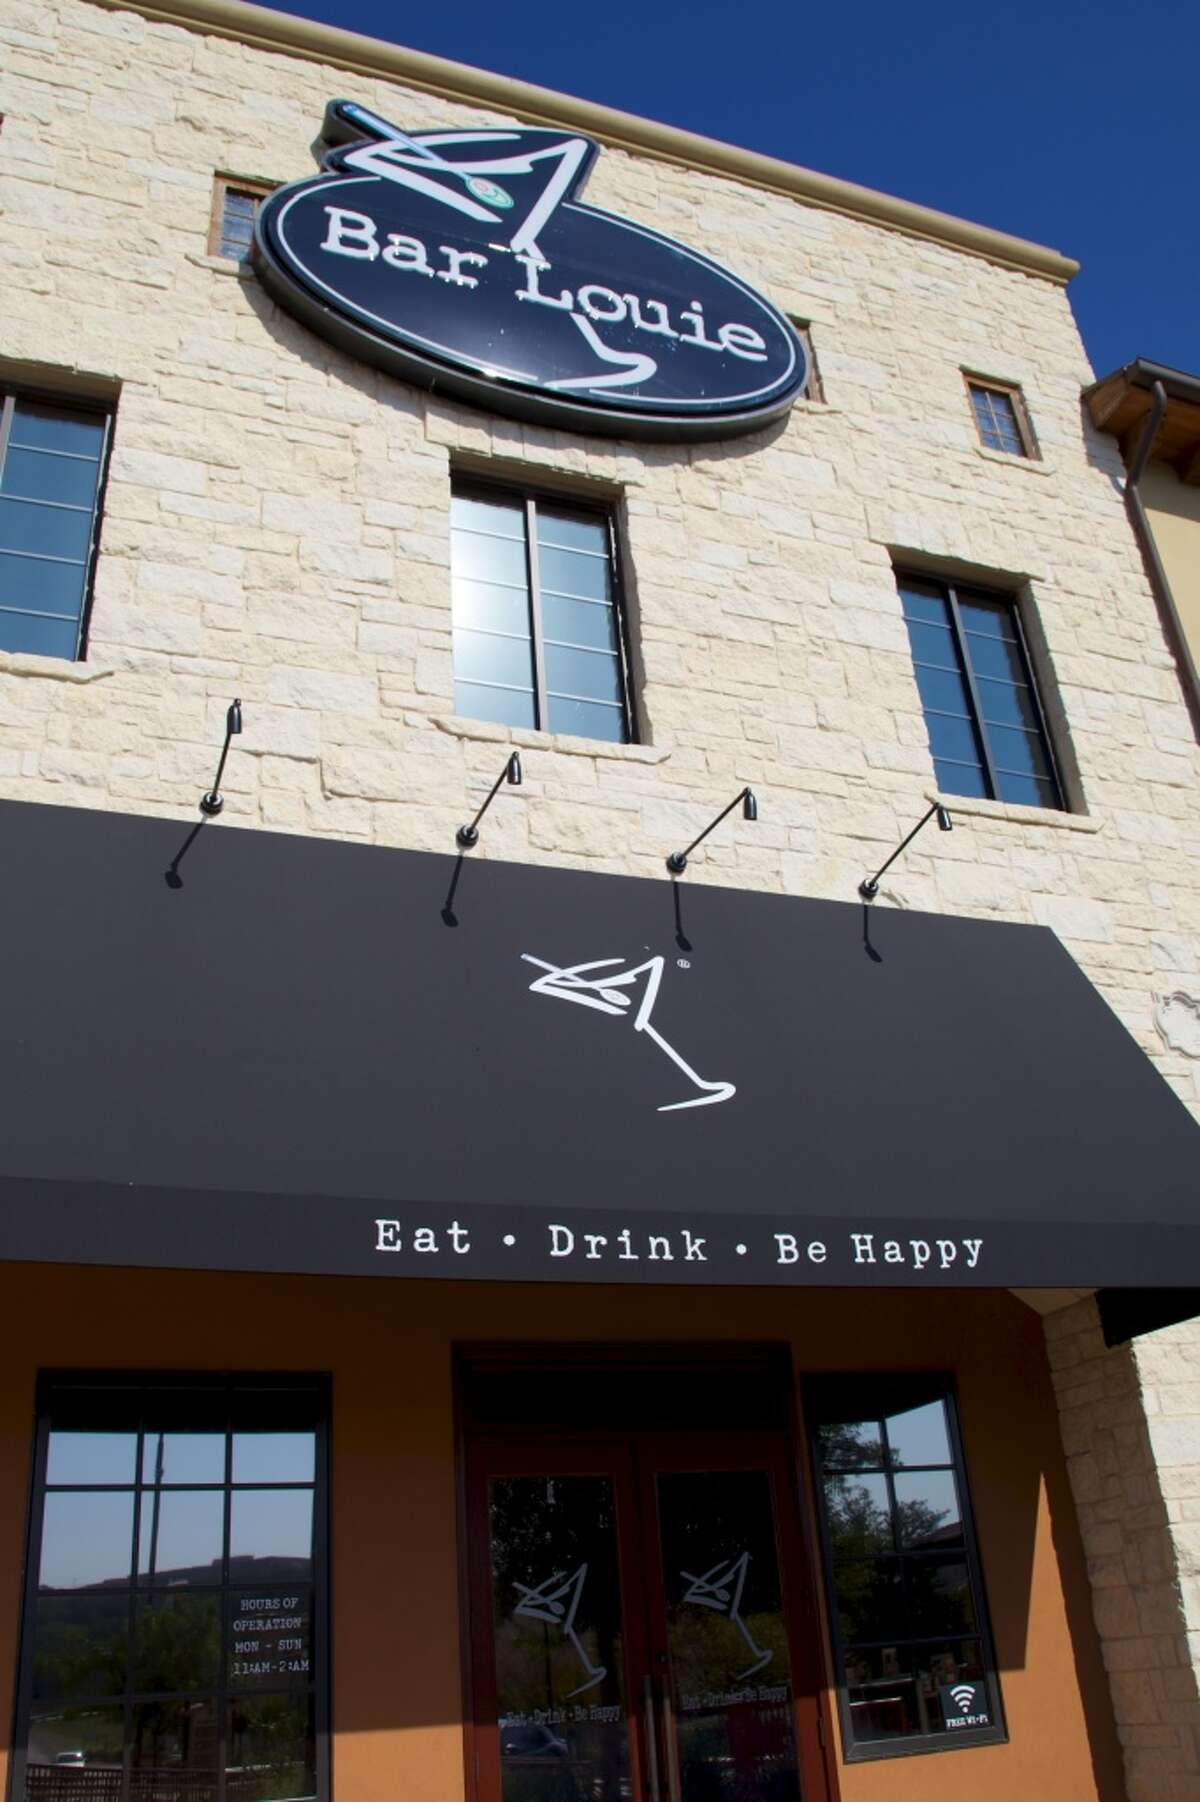 Bar Louie, 15900 La Cantera Pkwy., features $4 green beers and $6 Jameson all day Friday and will host a brunch on Saturday. Find out more info here.